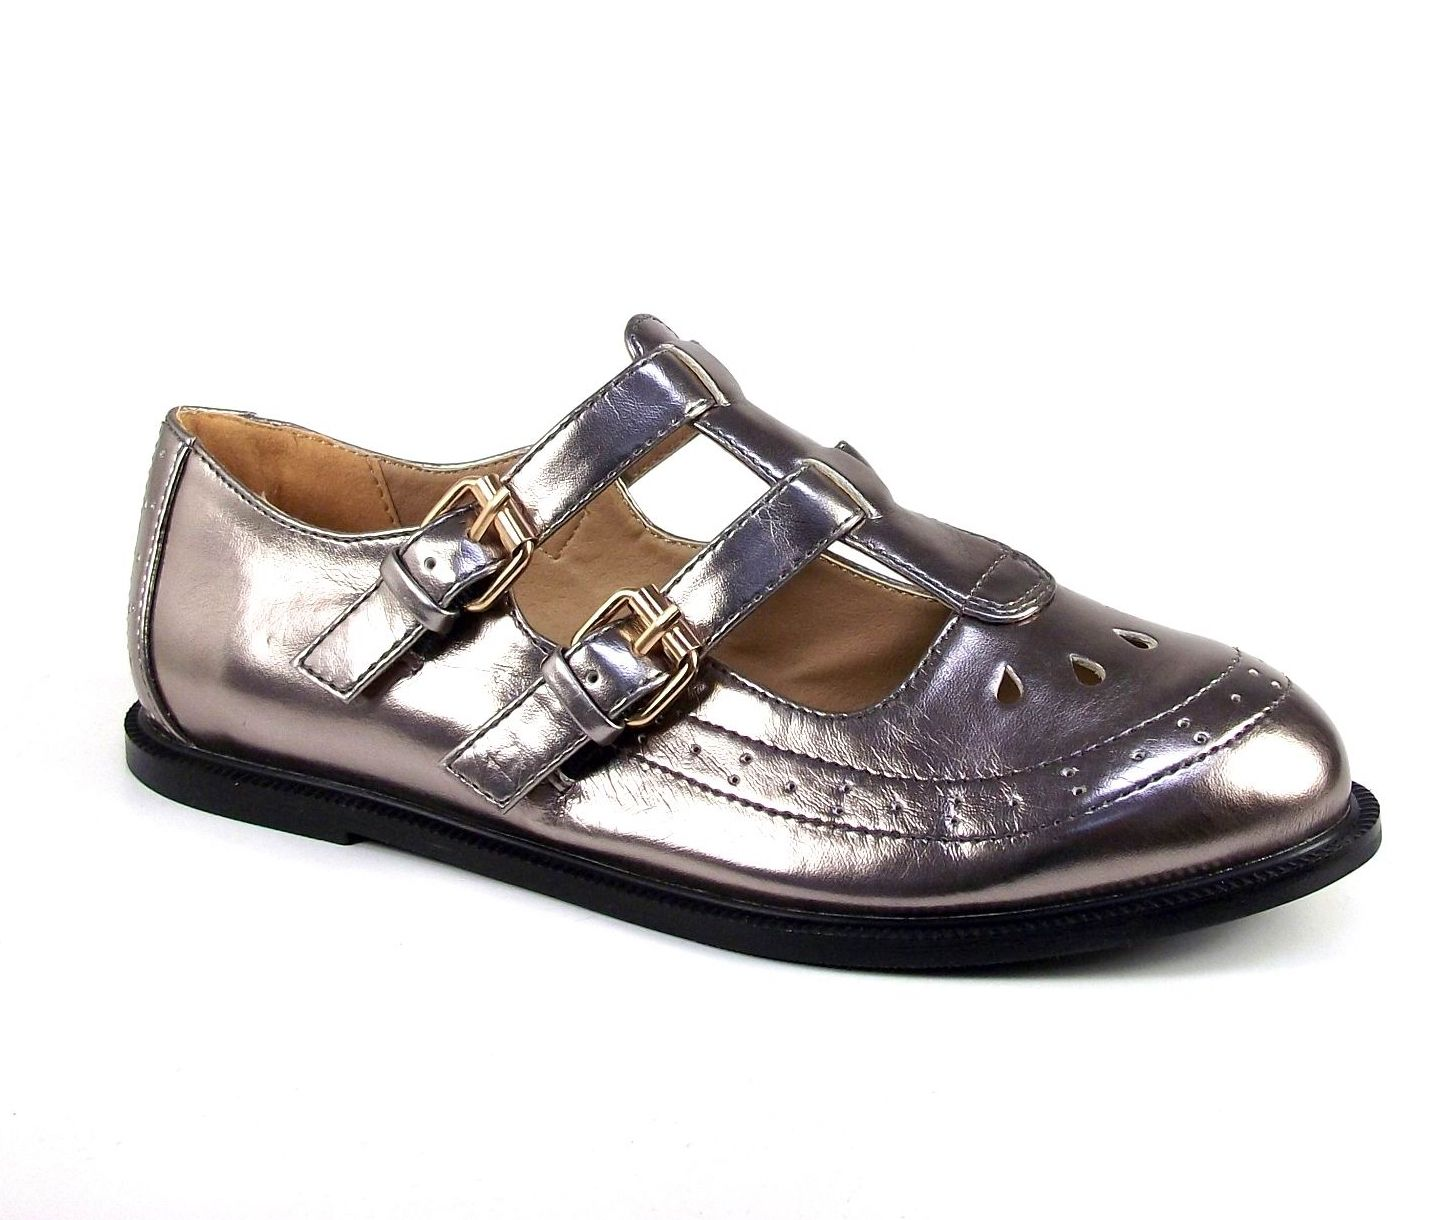 Ladies-Women-Girls-Gold-Buckle-T-Bar-Geek-Cut-Out-School-Office-Pumps-Shoes-Size